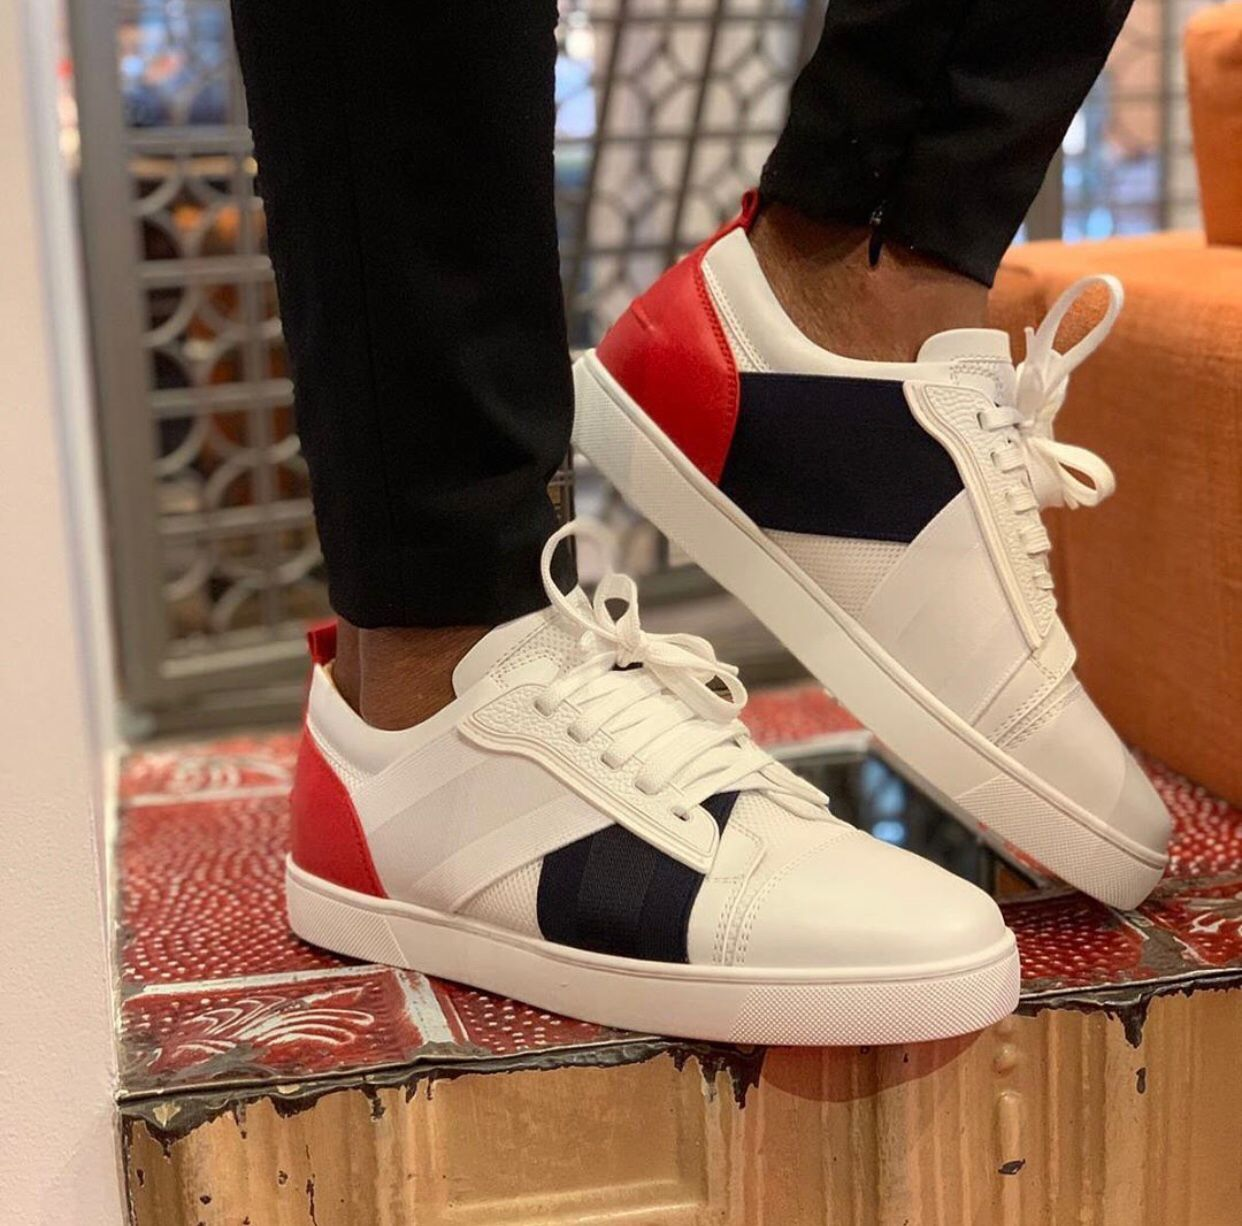 Summer Luxurious Elastikid Spikes Donna Red Bottom Sneakers Flat For Men,Women Casual Popular Best Gift Red Sole Skateboard Walking